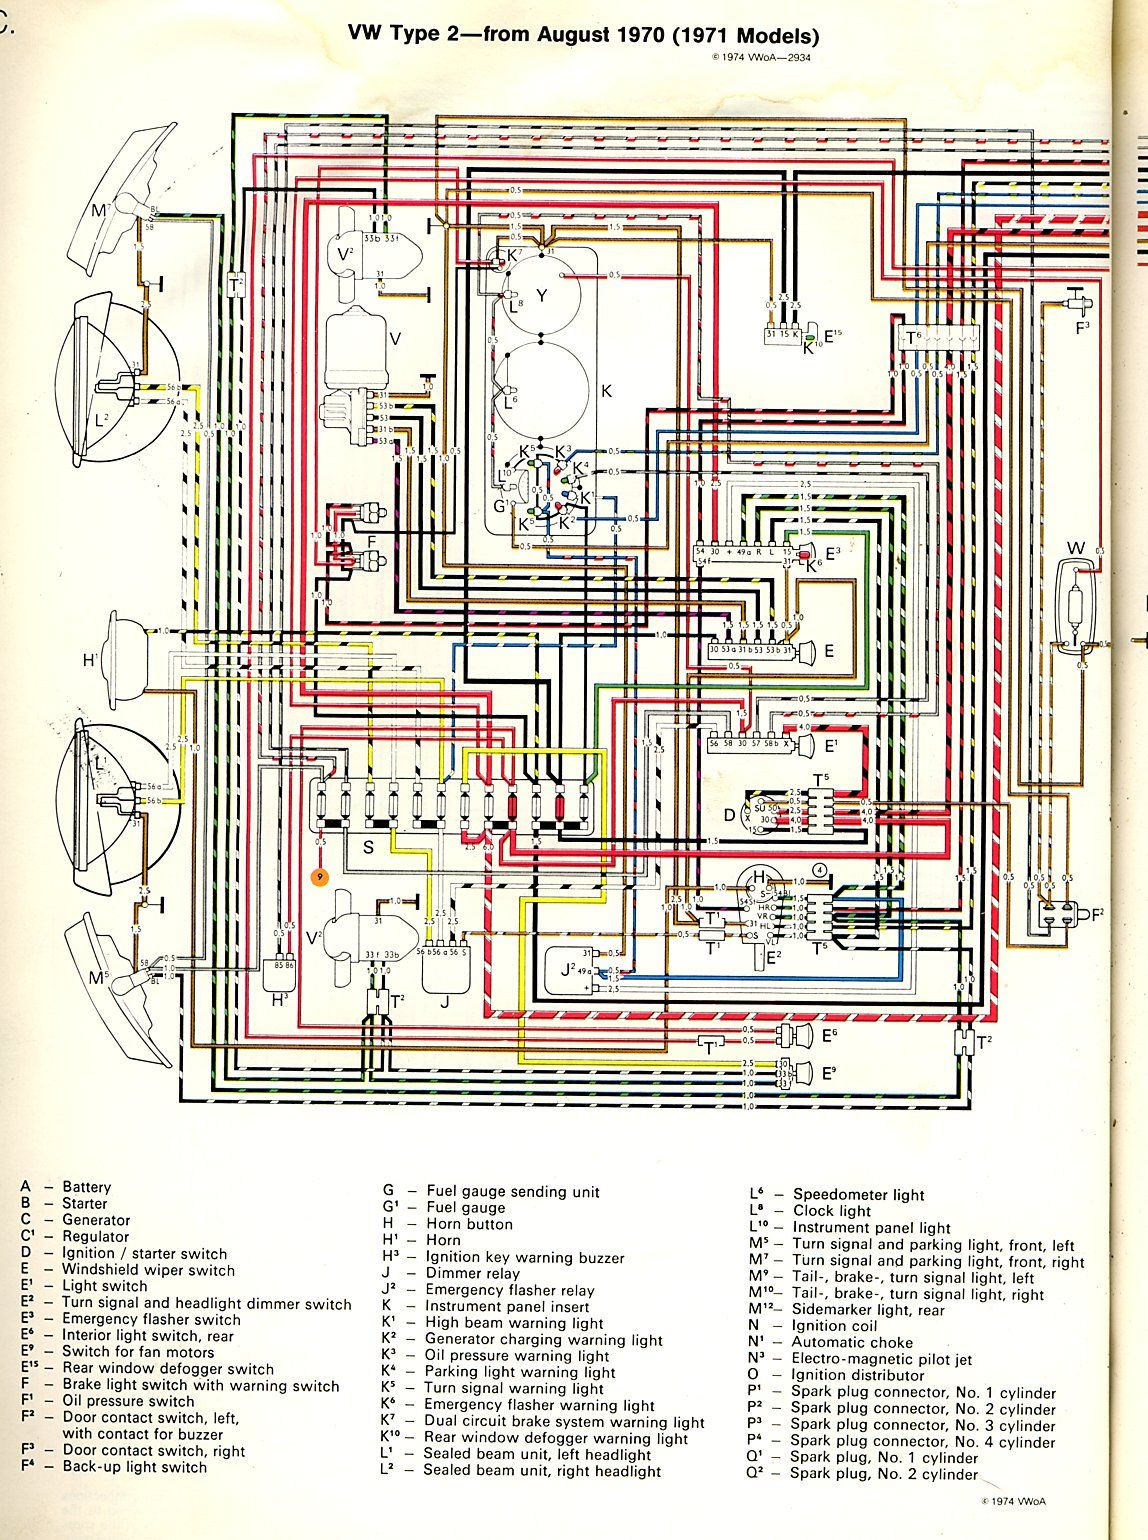 26730f3f6ceb3f1e1b50646c57249616 1971 bus wiring diagram thegoldenbug com stuff to try 1970 vw beetle wiring schematic at n-0.co